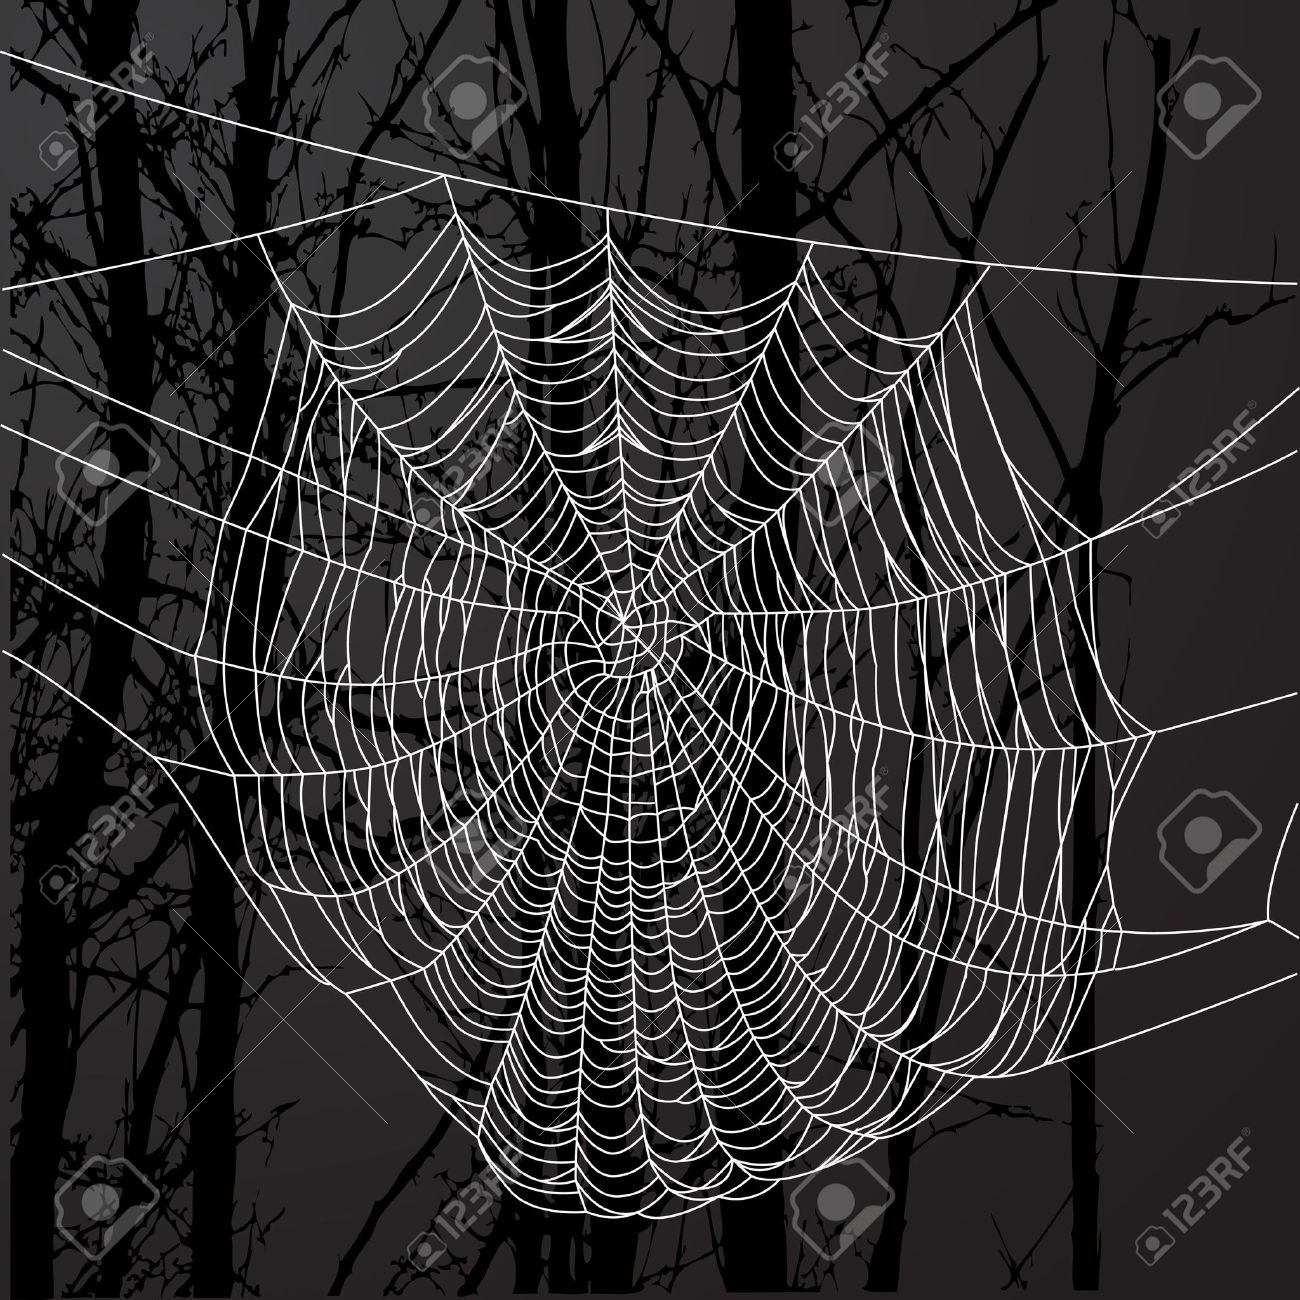 Realistic spider web over black background with tree. Stock Vector - 17641716